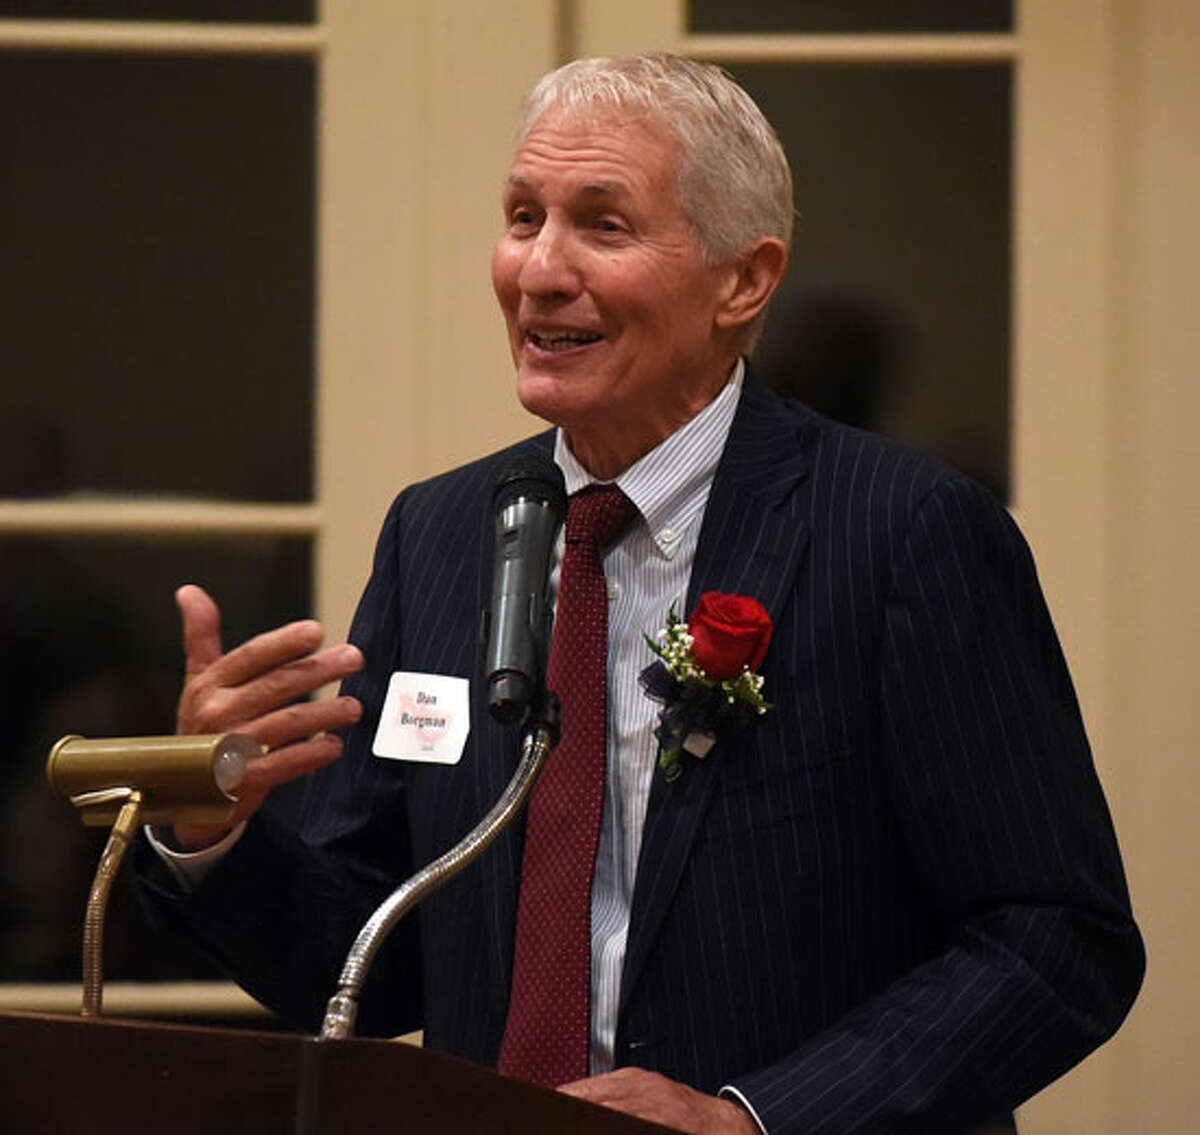 Dan Borgman at the podium during the NCHS Hall of Fame Awards Dinner at Woodway CC on Friday, Sept. 28. - Dave Stewart photo